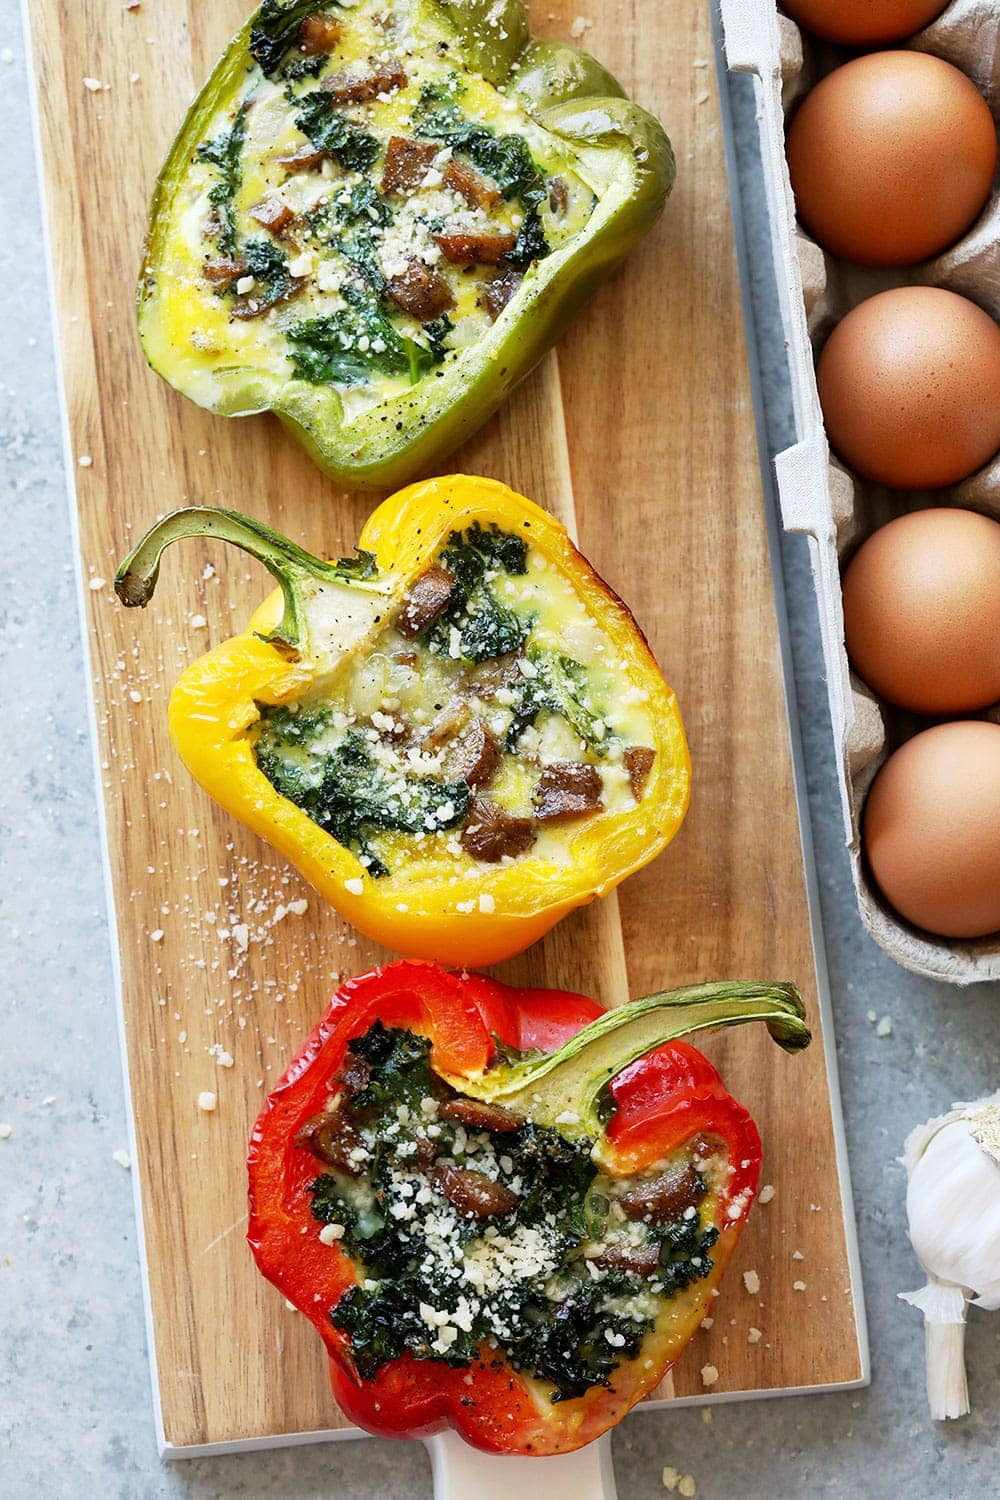 Cheesy Breakfast Sausage Stuffed peppers on a cutting board